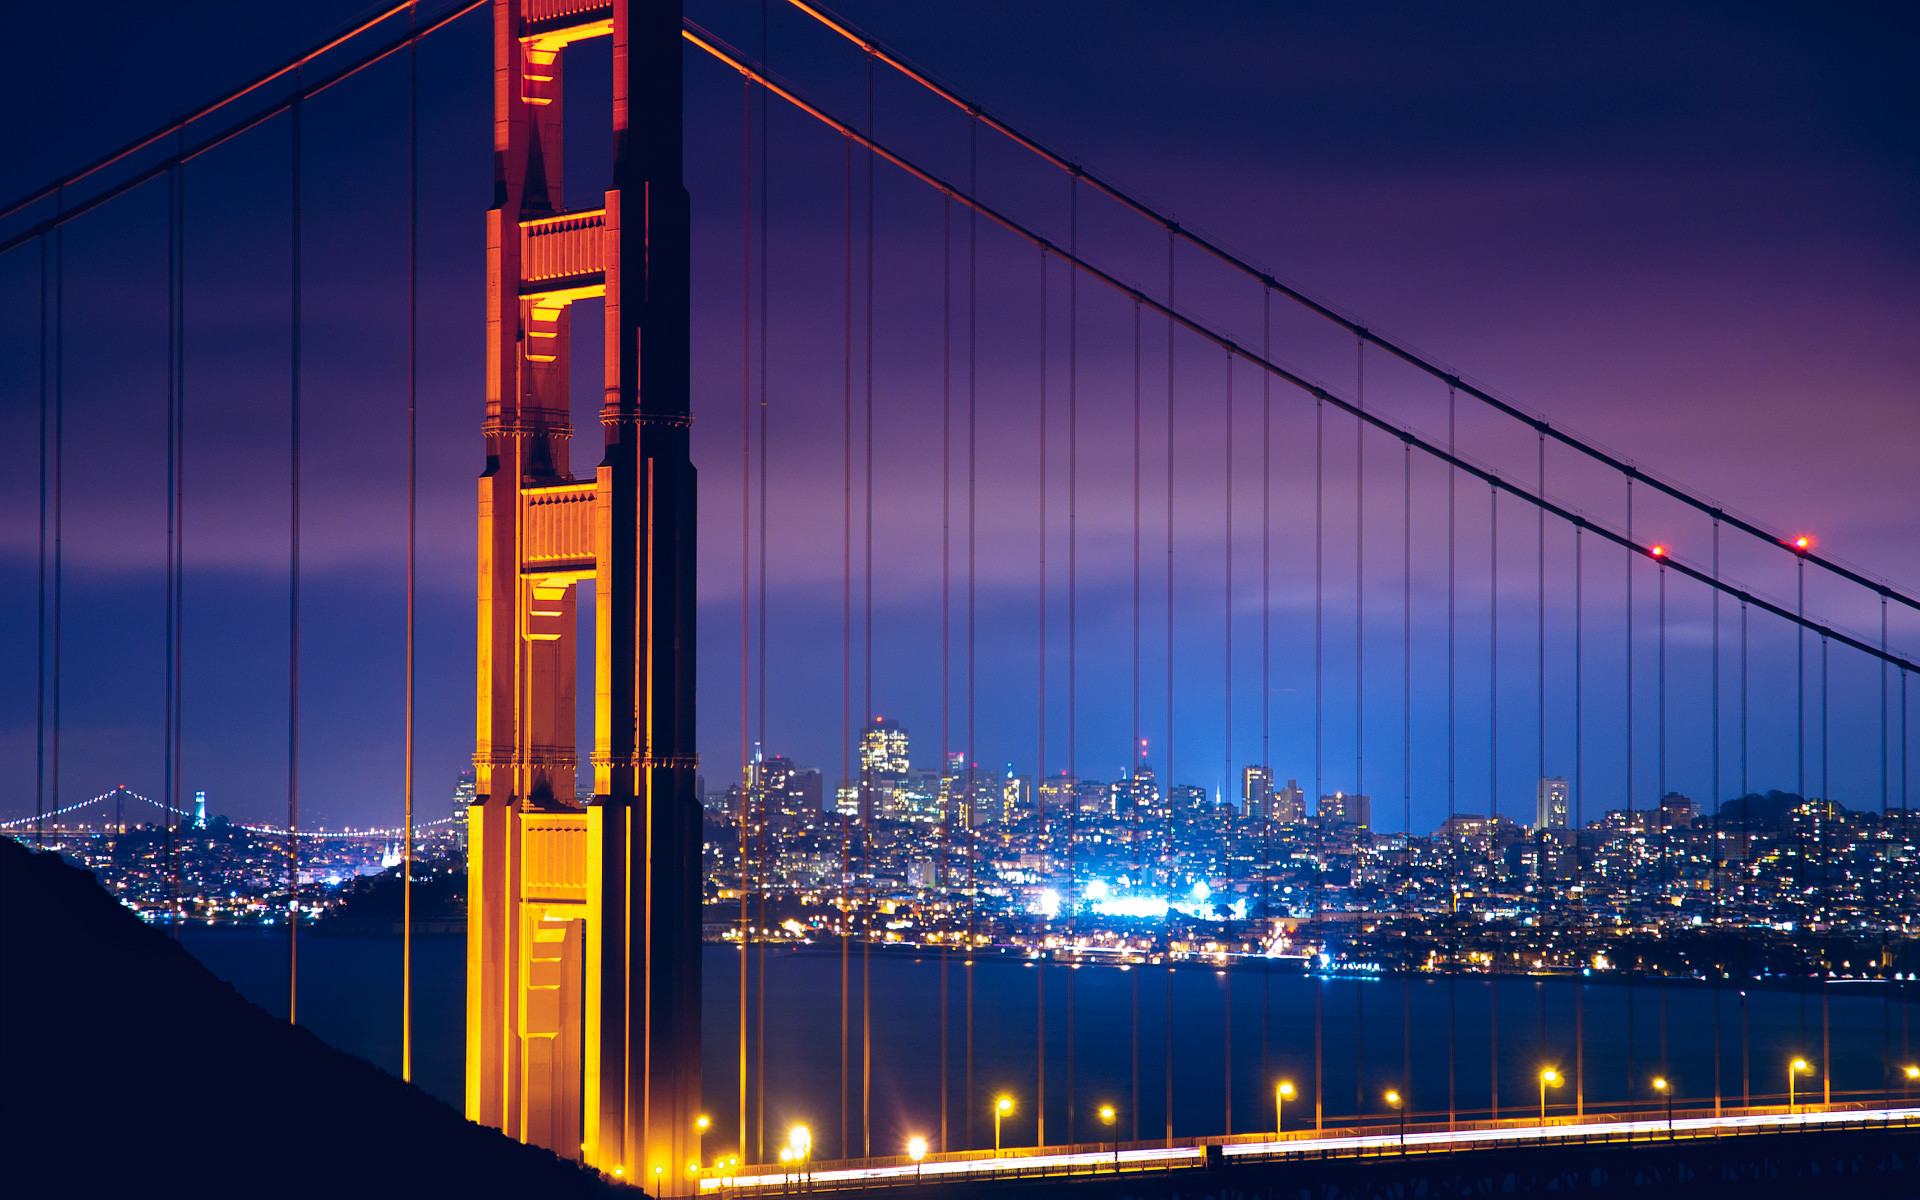 1920x1200 Daily Wallpaper: Golden Gate Bridge, San Francisco [Exclusive] | I Like To  Waste My Time